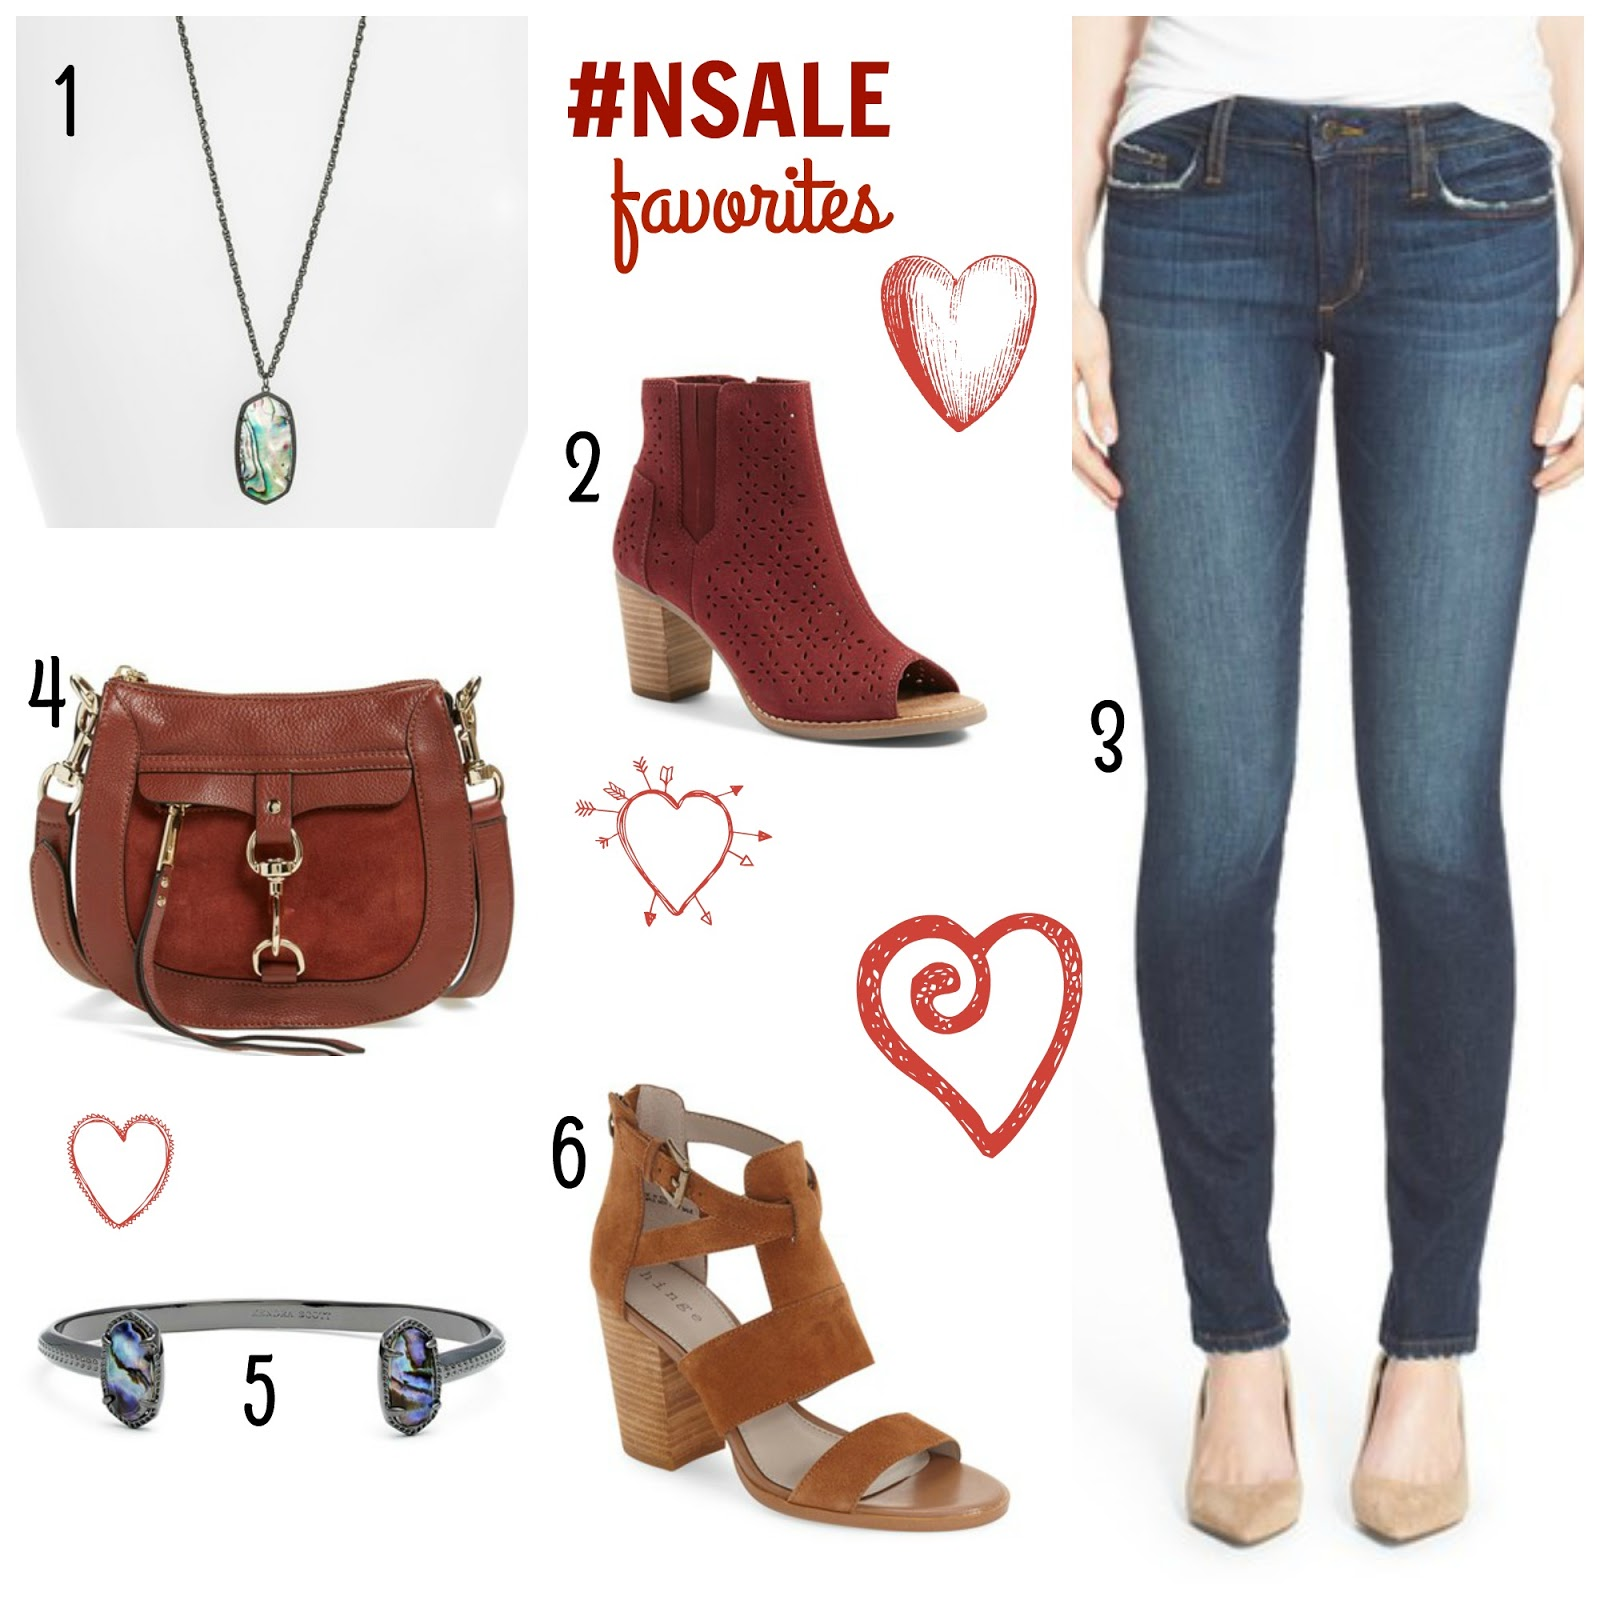 #NSALE favorites